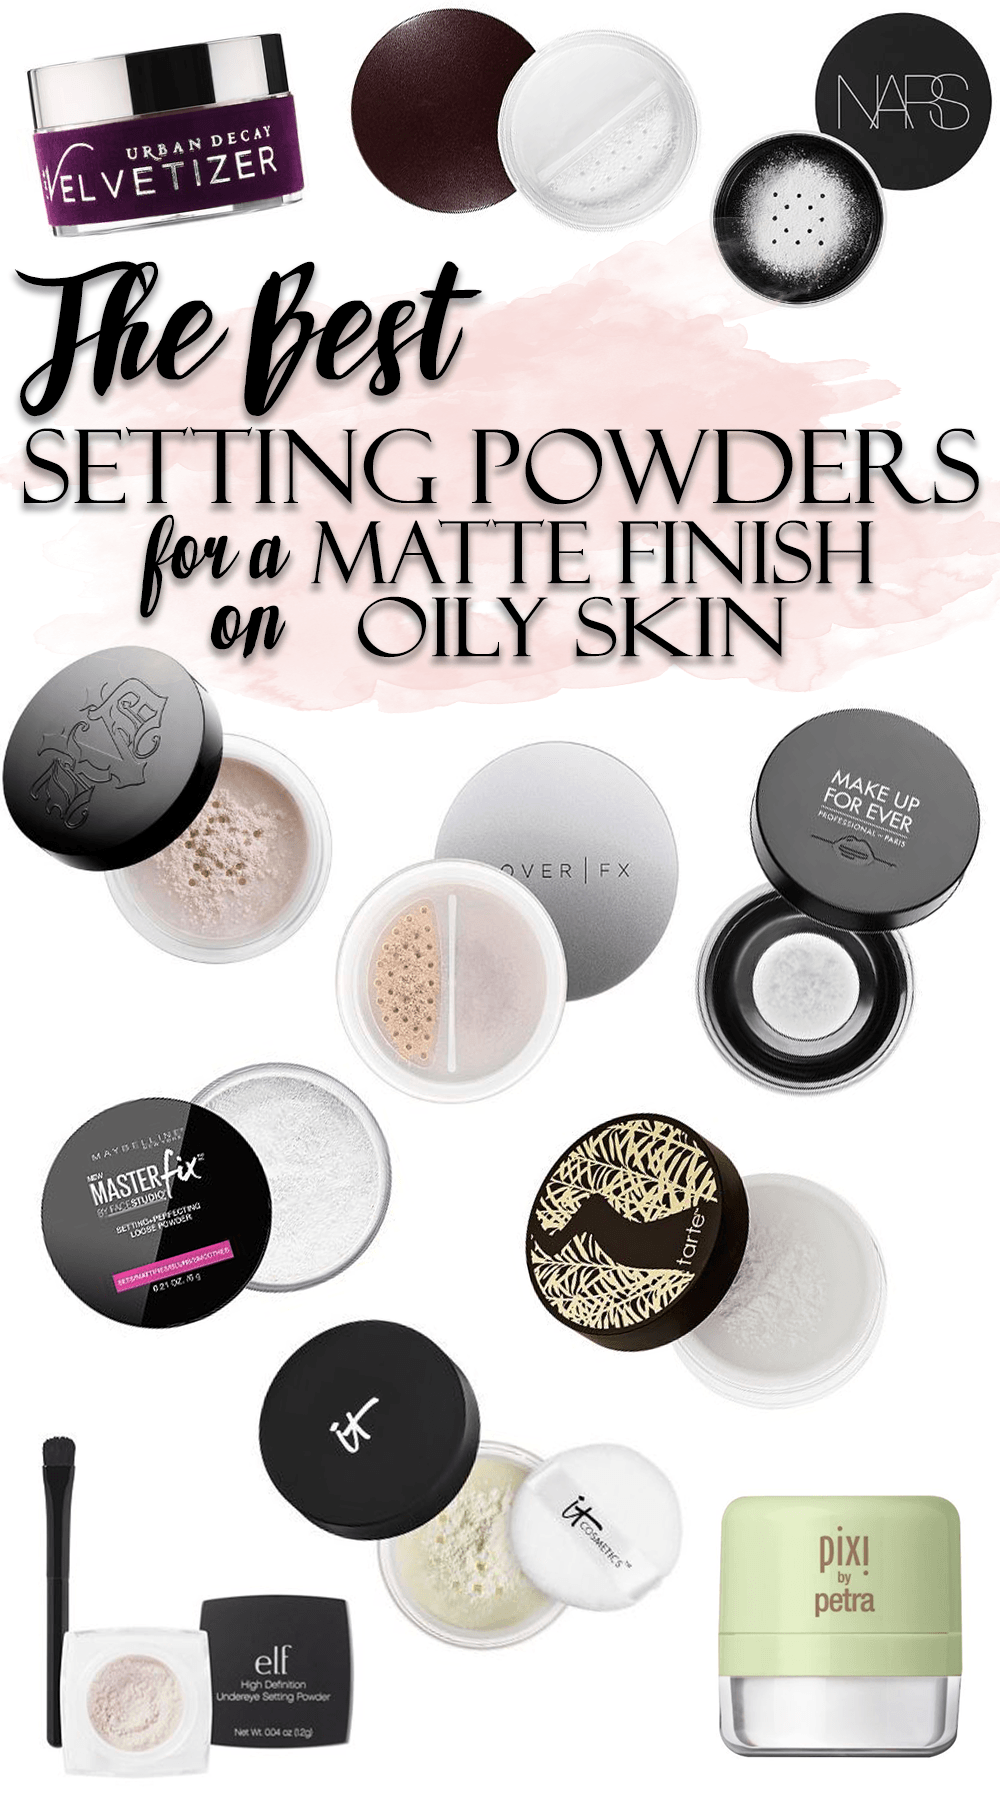 The Best Setting Powders for Oily, Sweaty SummerSkin forecasting